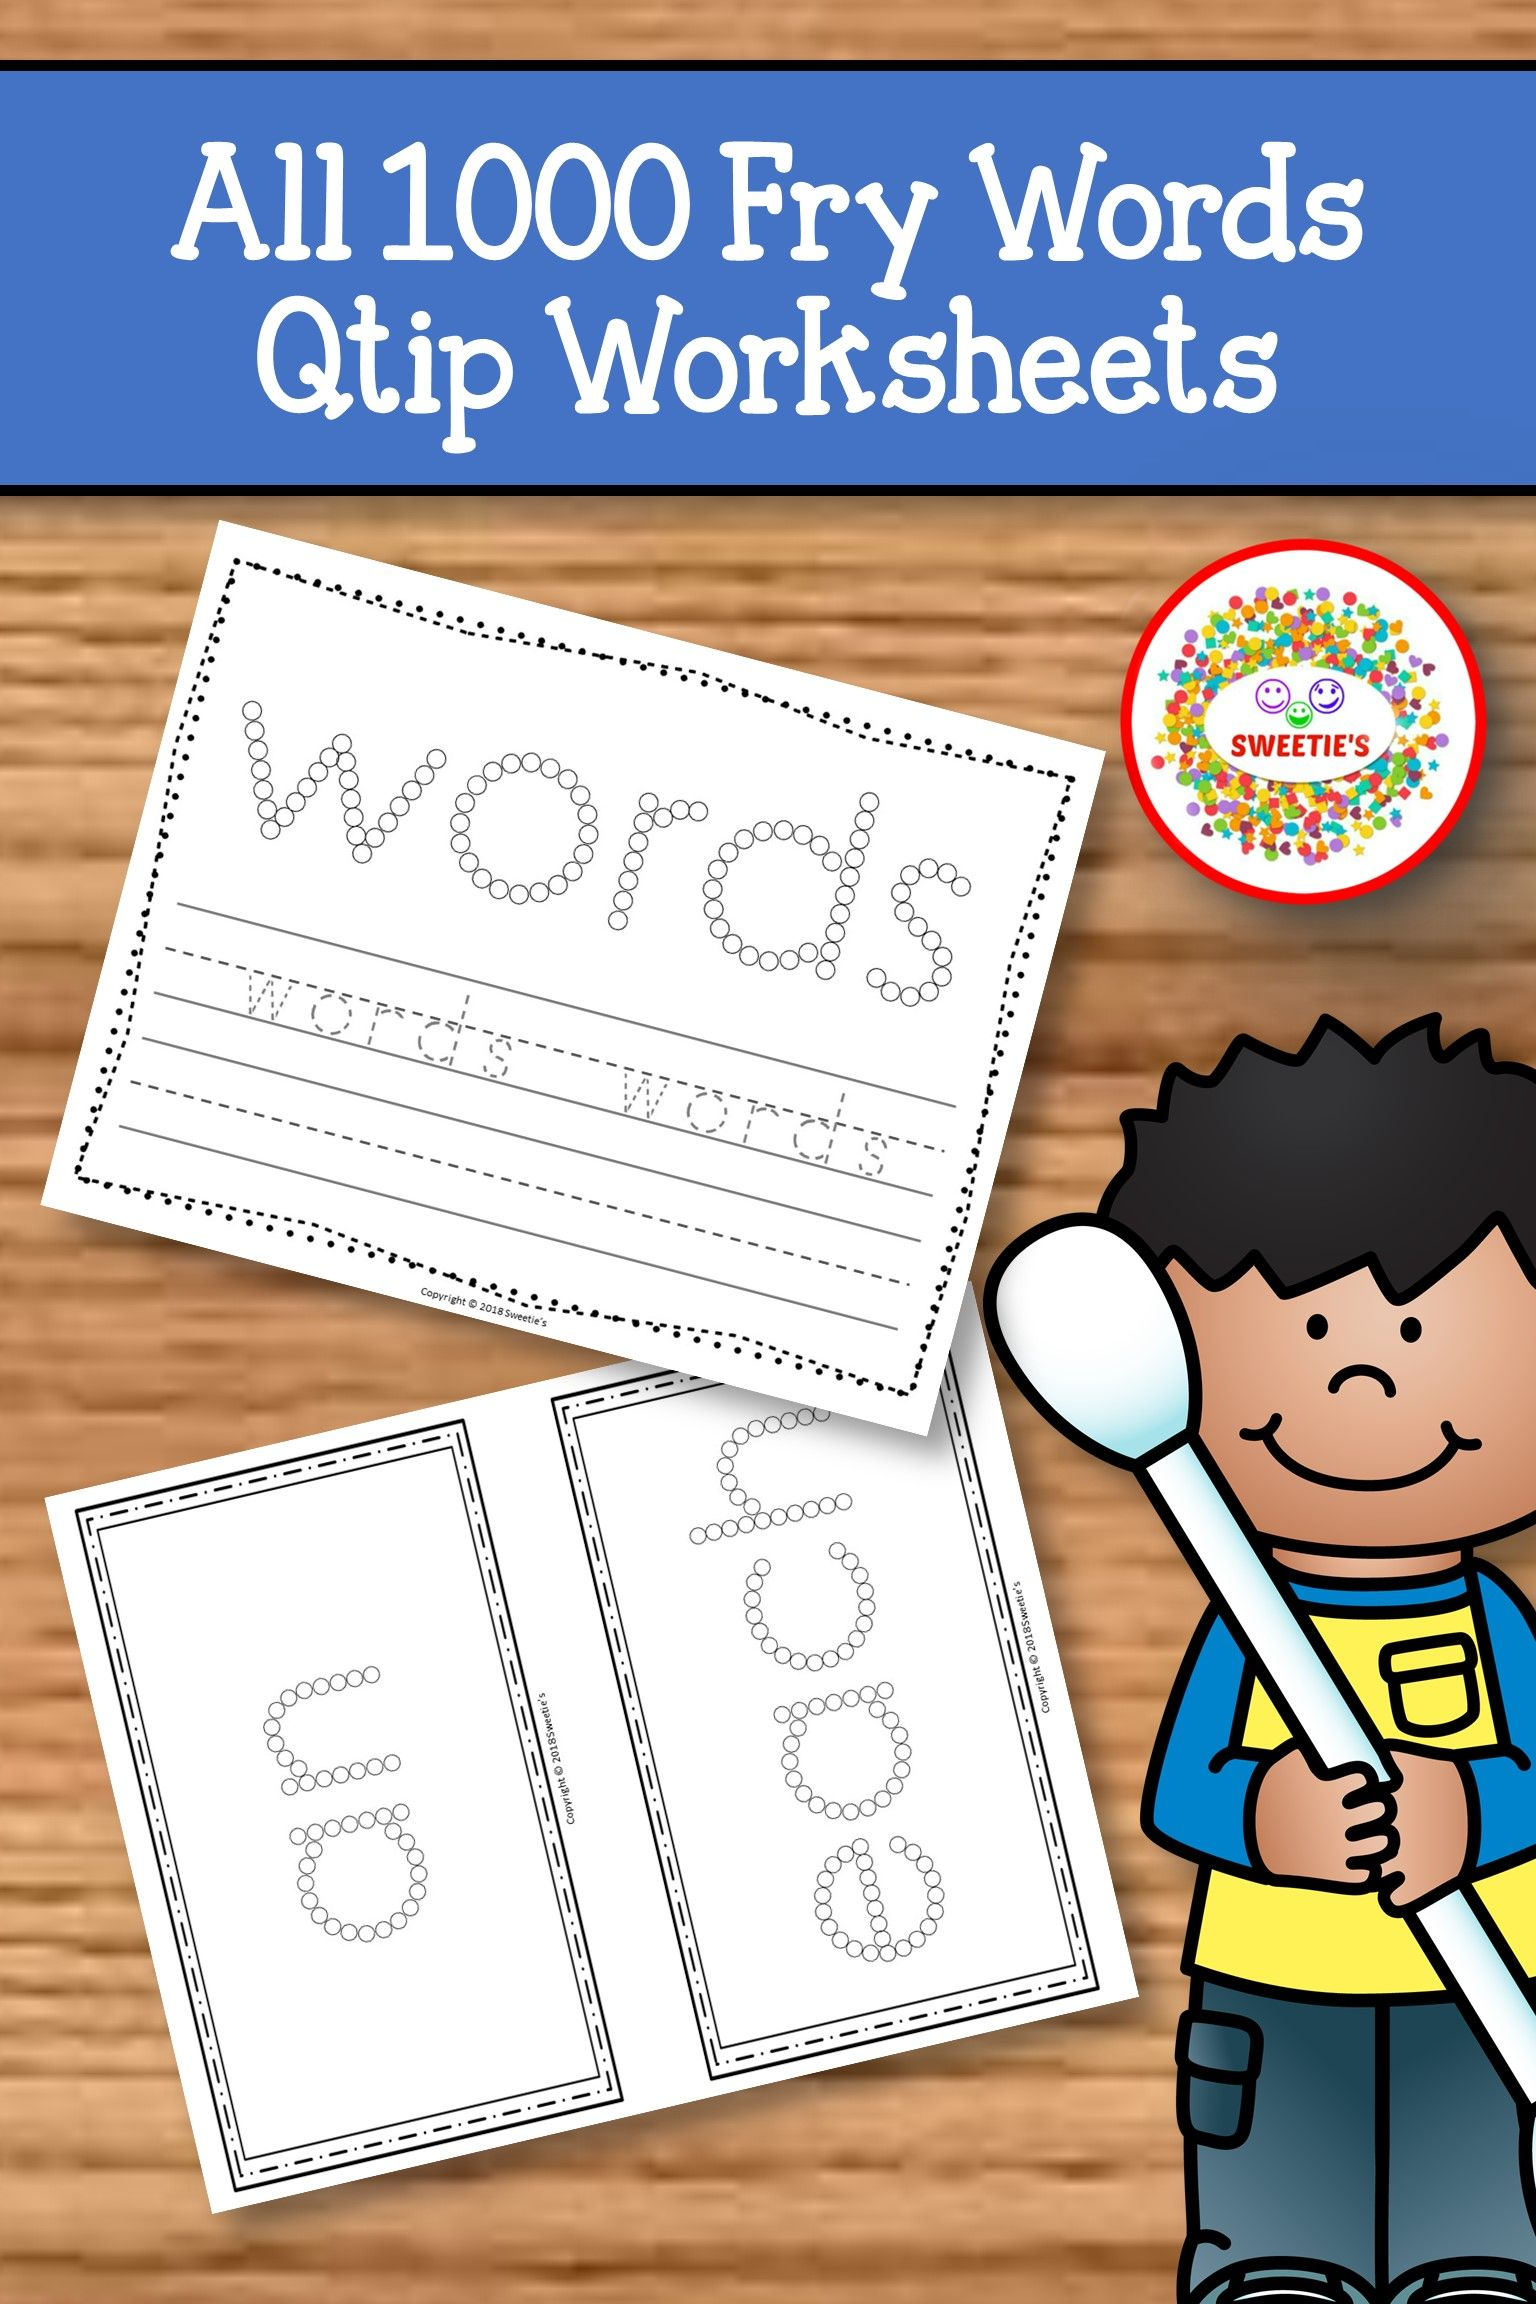 Fry Sight Word Activities Worksheets With Q Tip Painting